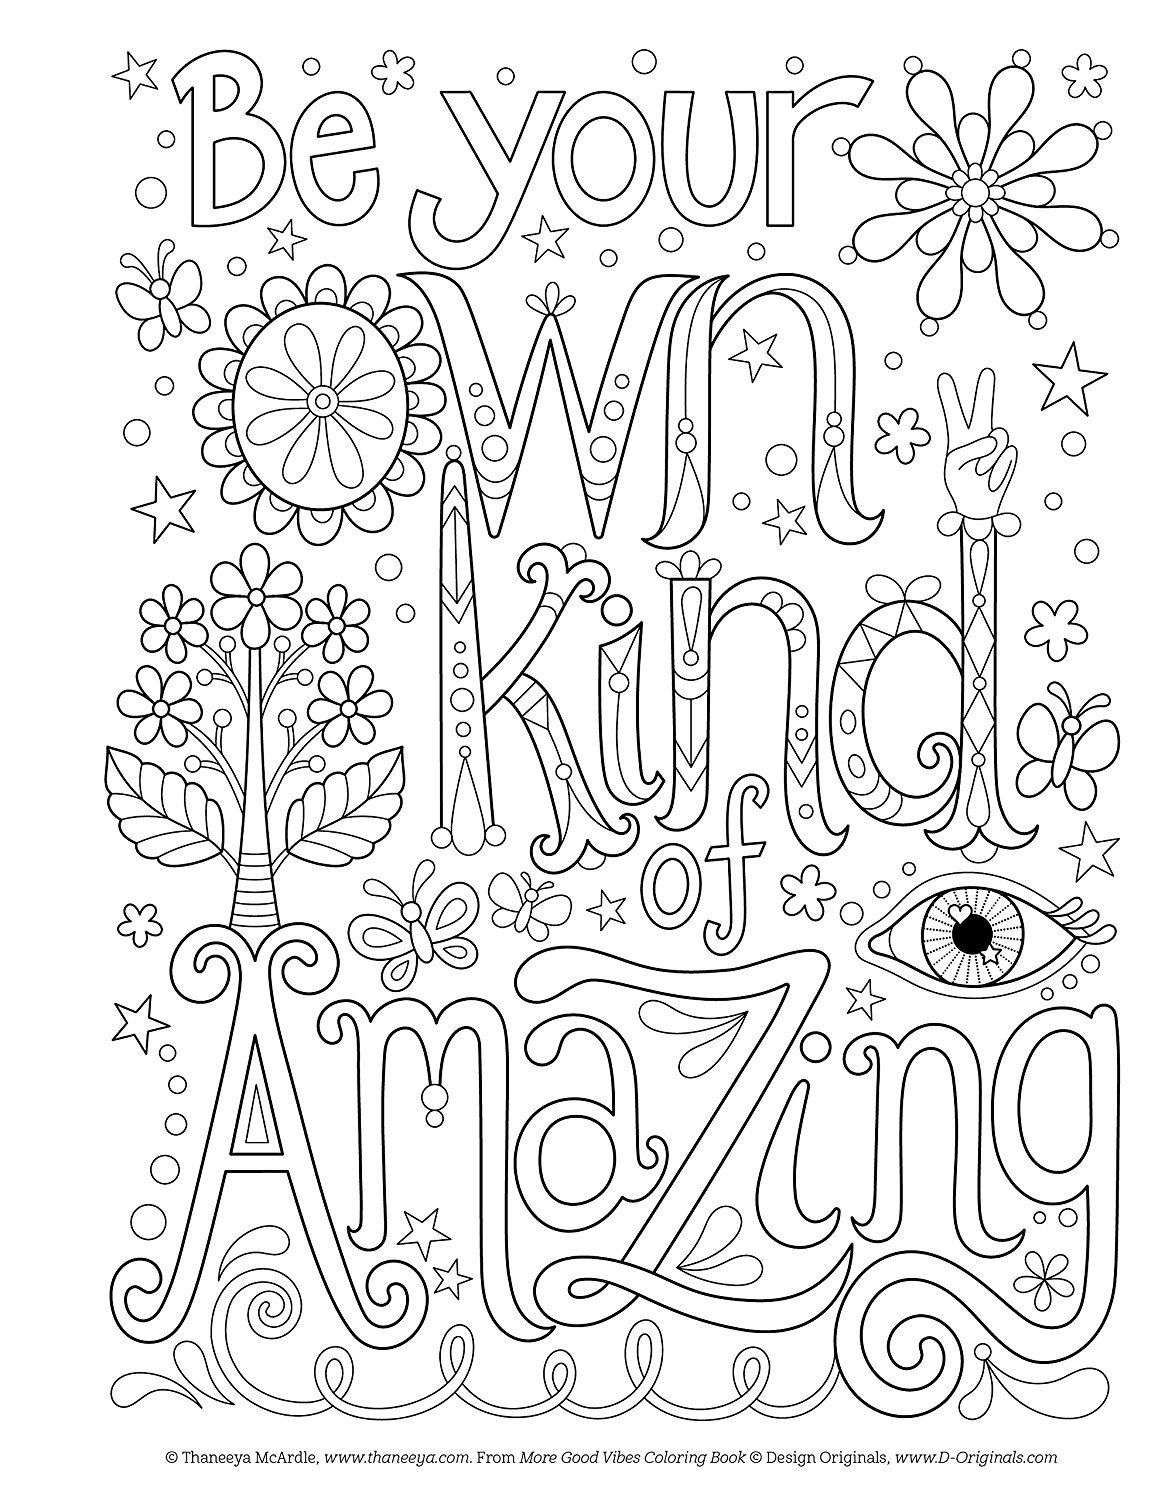 Quote Coloring Pages Adult Coloring Pages Free Coloring